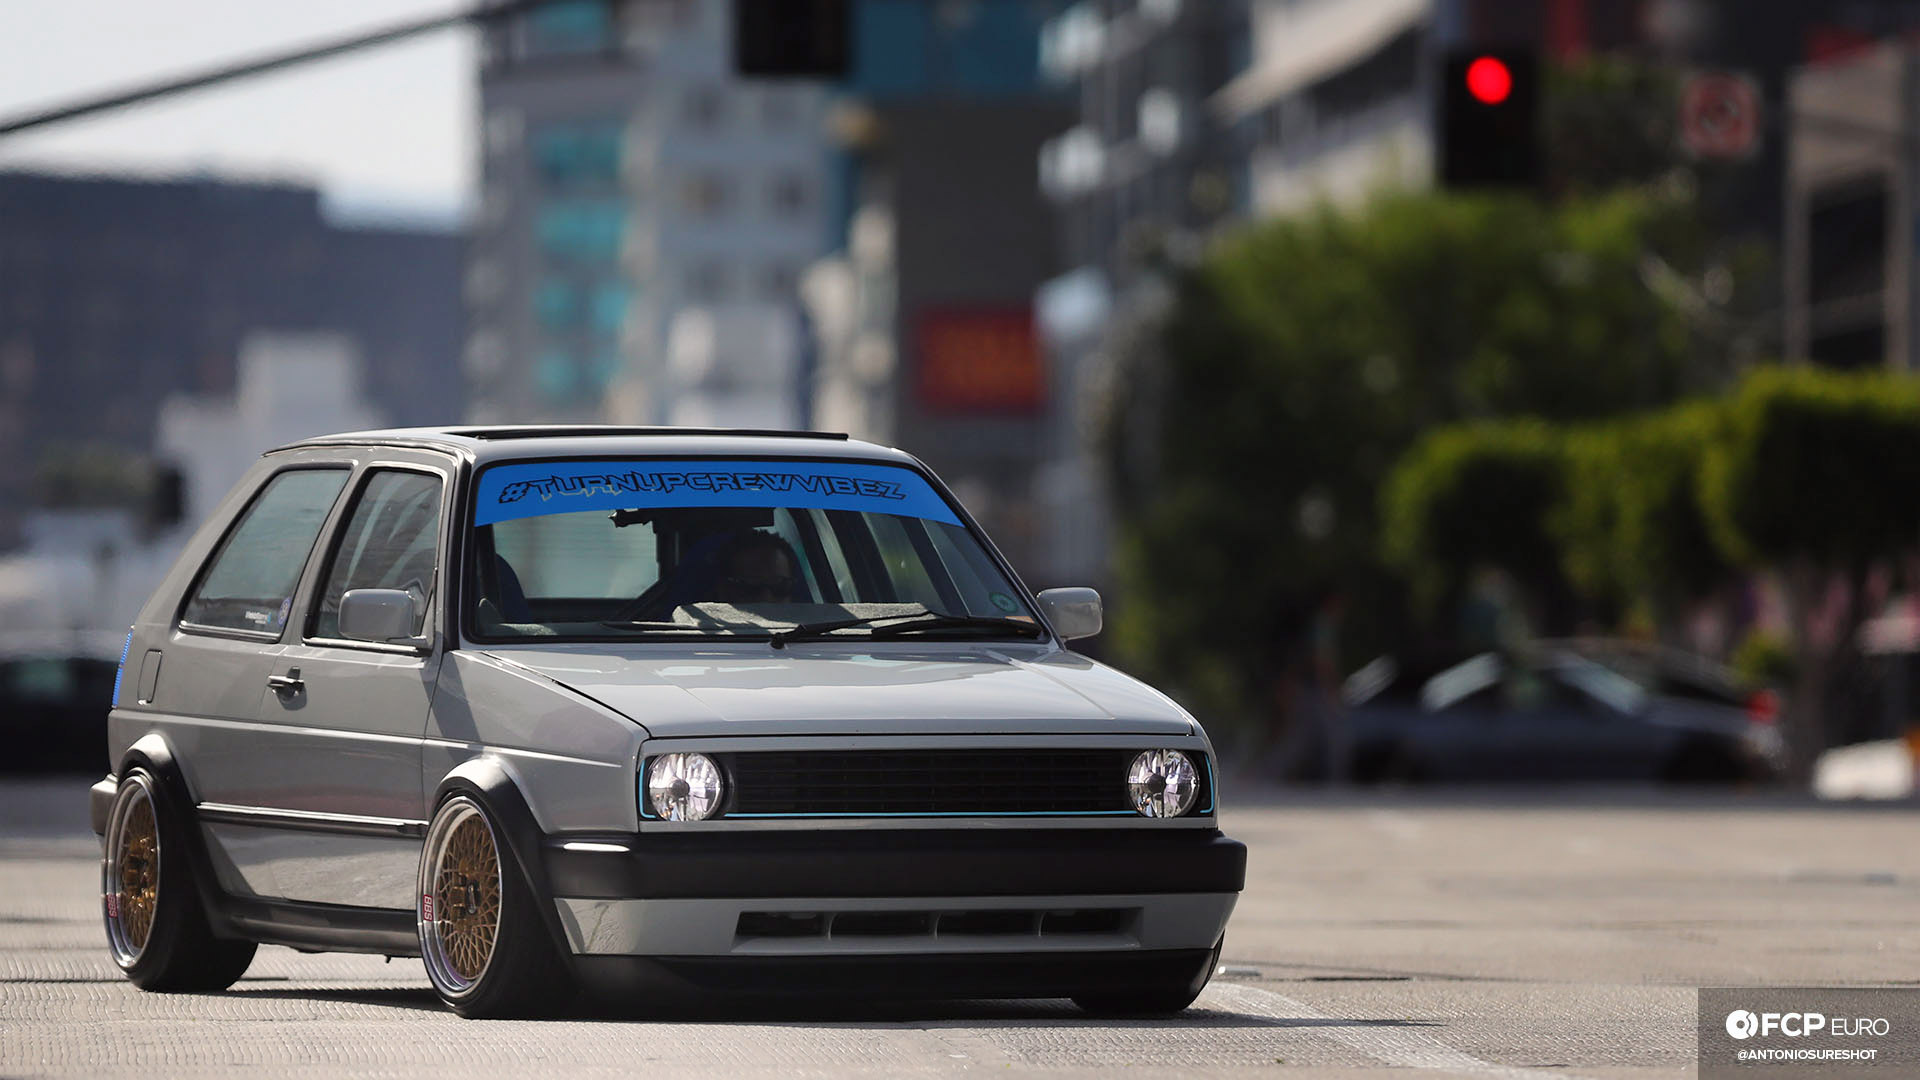 Don't Judge This Book By Its Cover - VR6 Swapped VW GTI